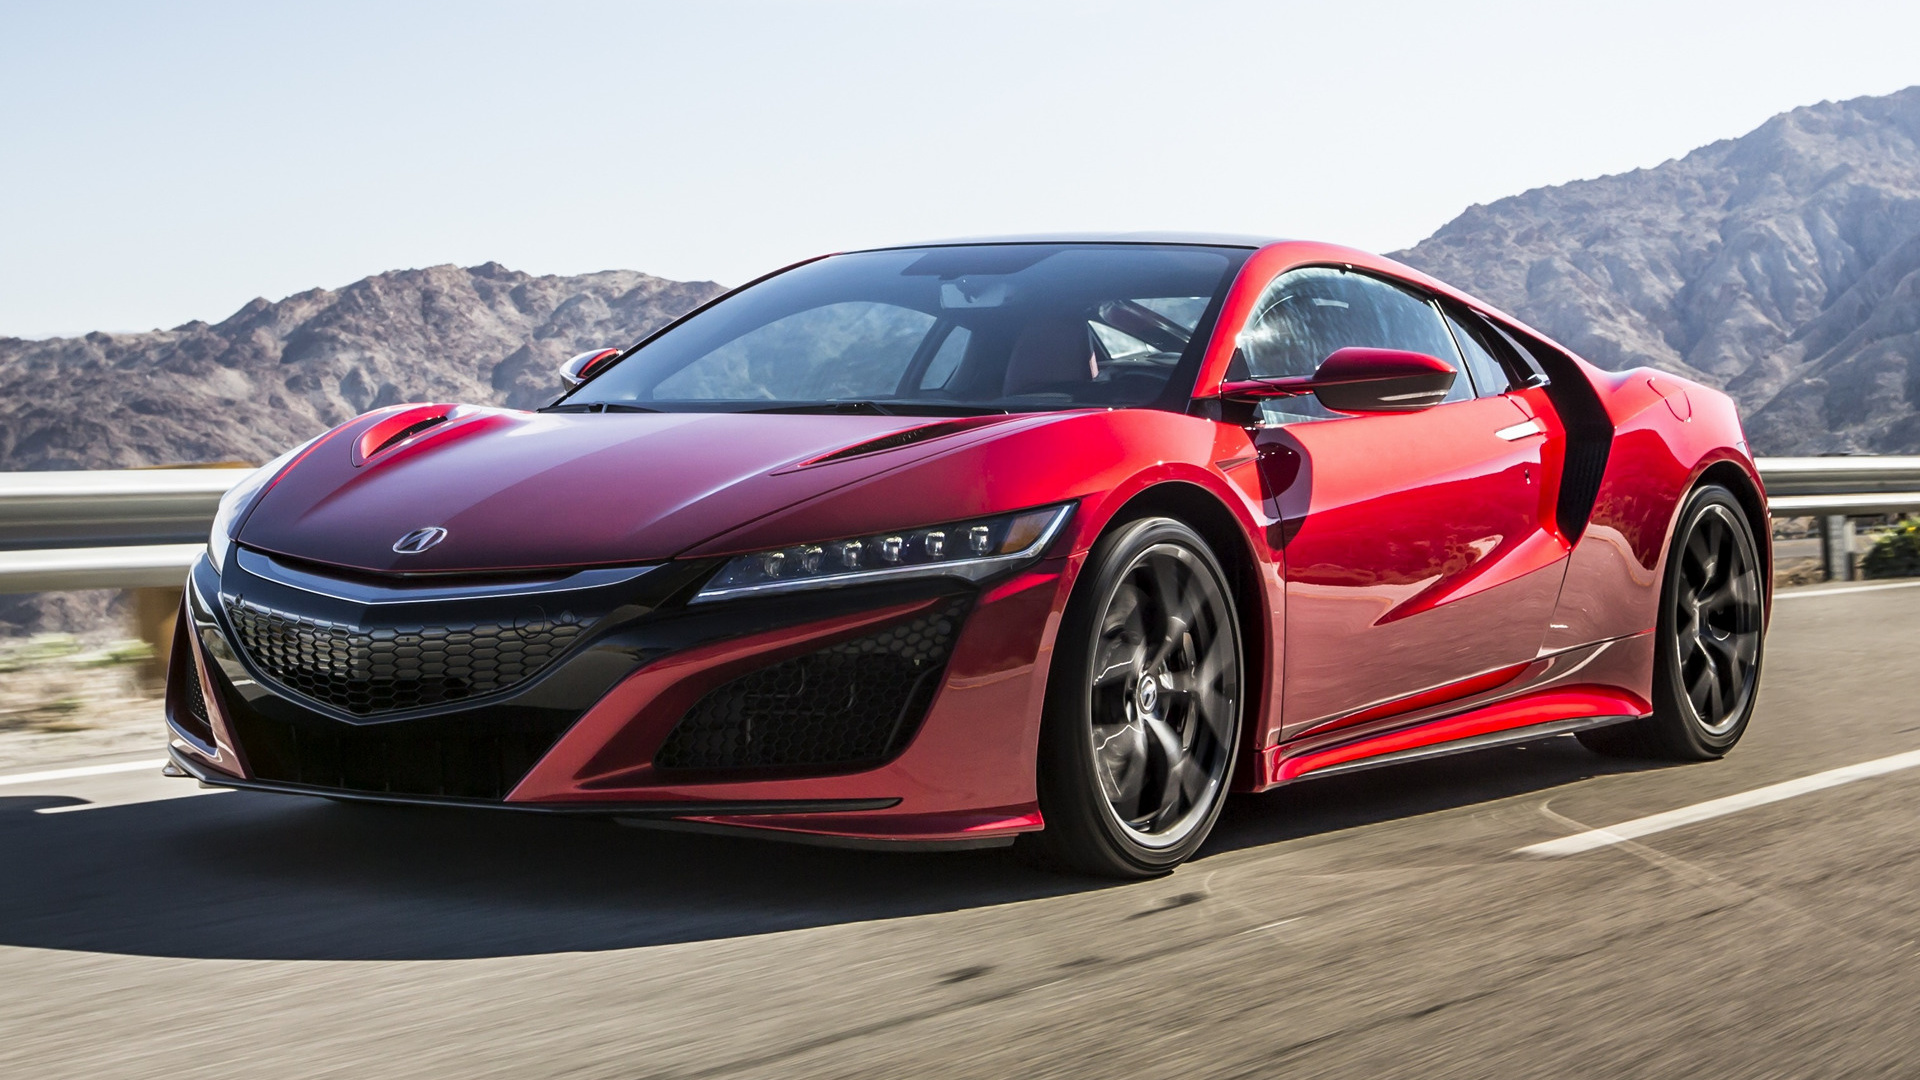 Acura Nsx Wallpaper Hd